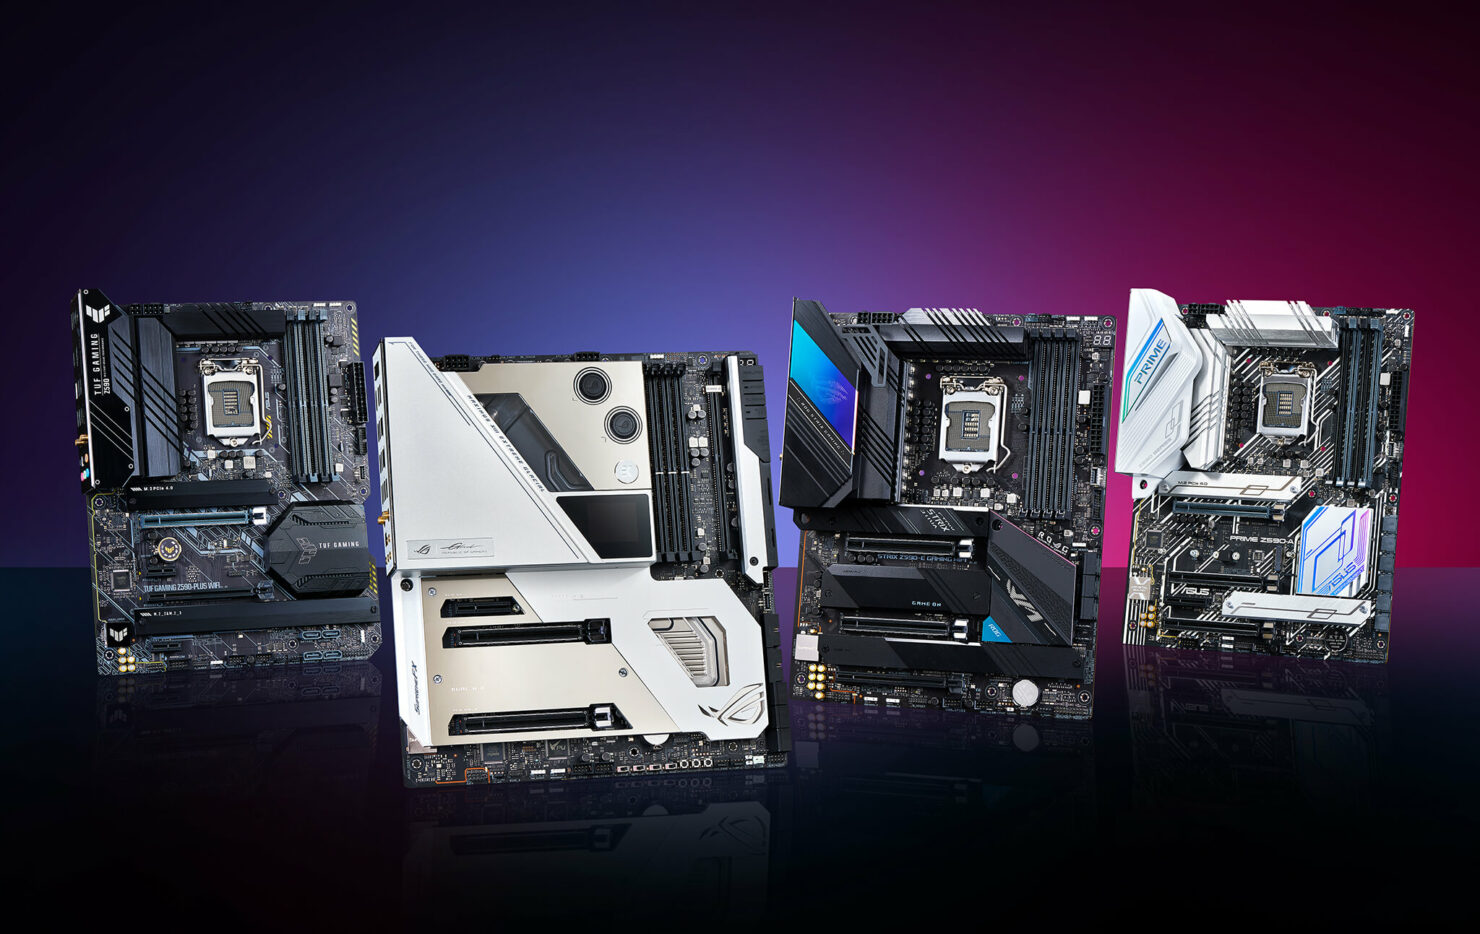 ASUS Z690 Motherboard Lineup Leaks Out – ROG Maximus XIV, ROG STRIX, TUF Gaming & PRIME Series